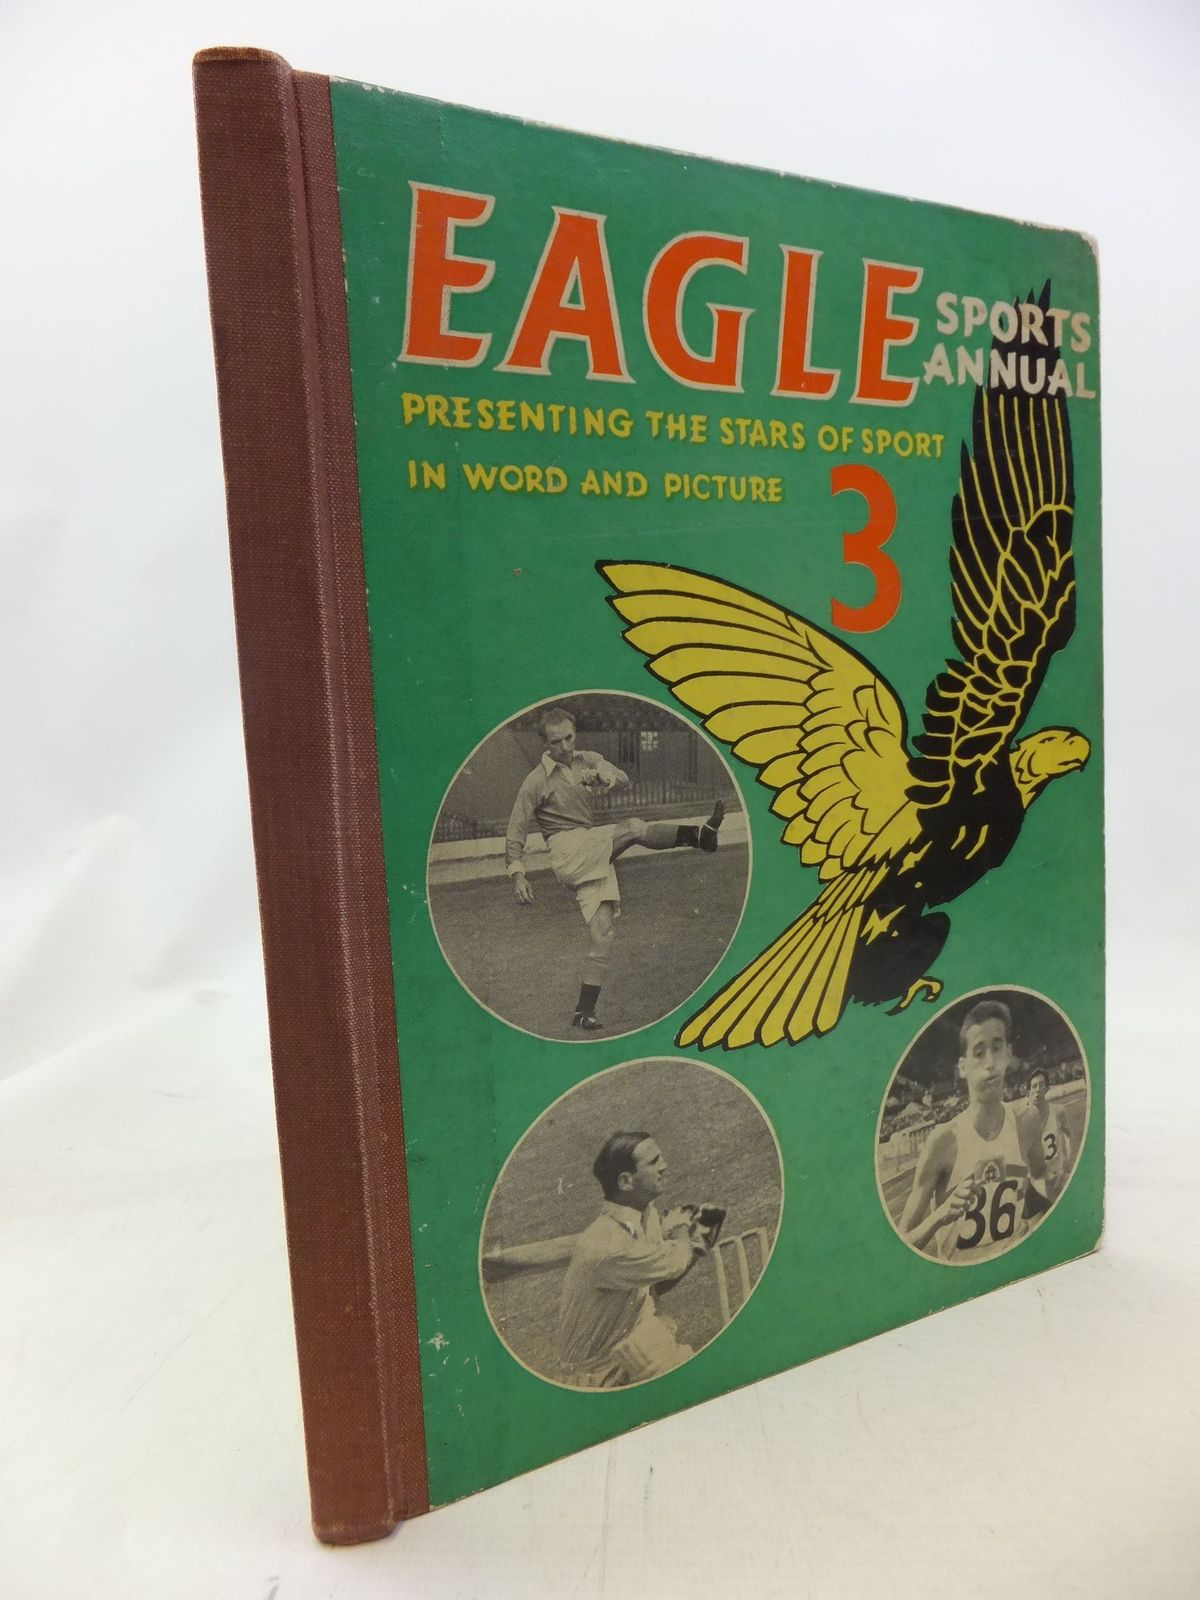 Photo of THE THIRD EAGLE SPORTS ANNUAL written by Morris, Marcus illustrated by White, Brian published by Hulton Press Ltd. (STOCK CODE: 1711417)  for sale by Stella & Rose's Books